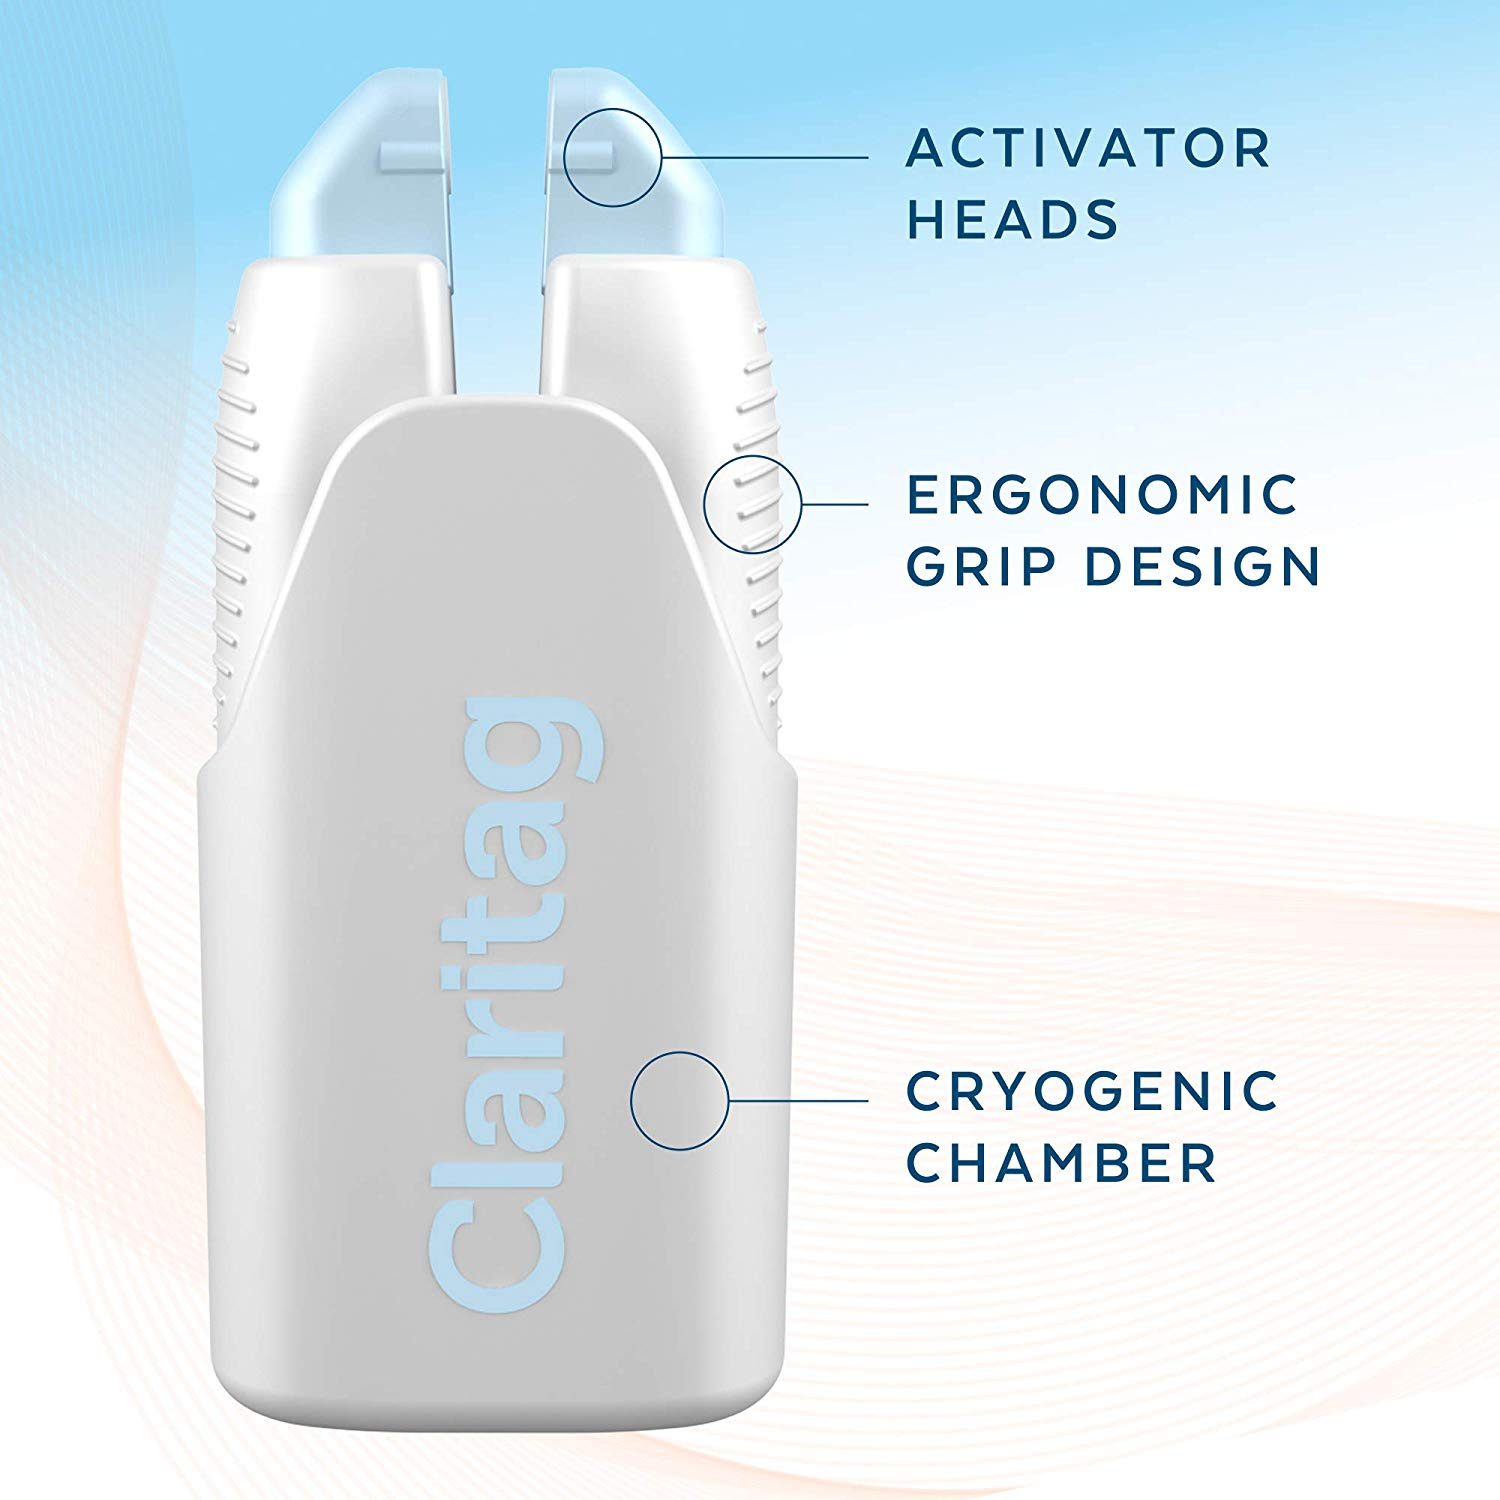 Calritag Squeeze And Freeze Skin Tag Removal Device Easy Painless And Effective At Home Skin Tag Remover Kit 10 Treatments Set Dermatologist Developed Patented Technology By Claritag